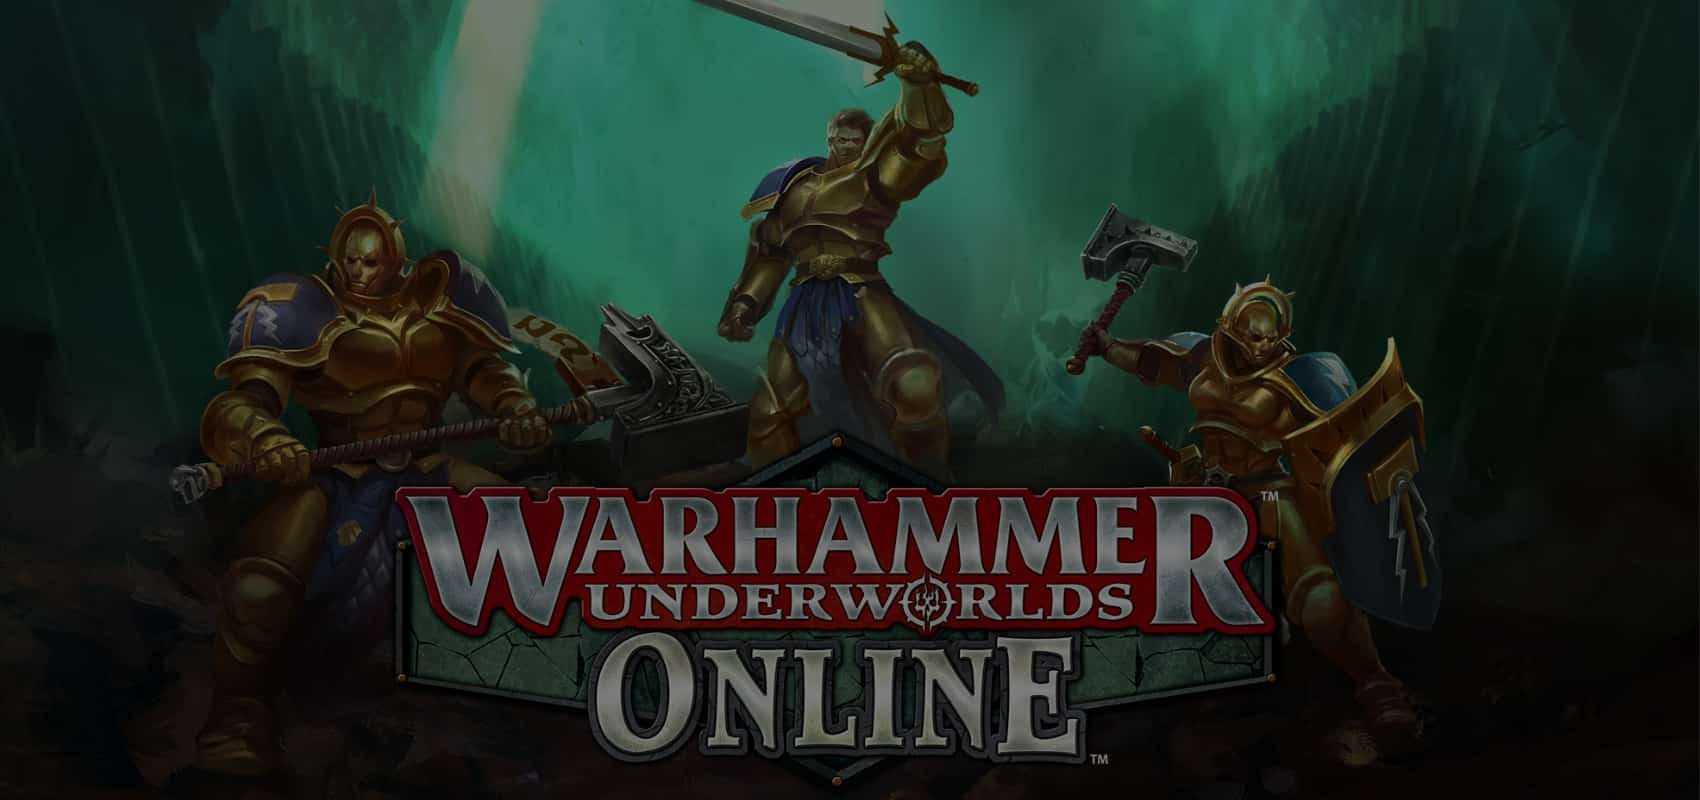 Steel Sky Productions partners with Games Workshop to develop Warhammer Underworlds: Online